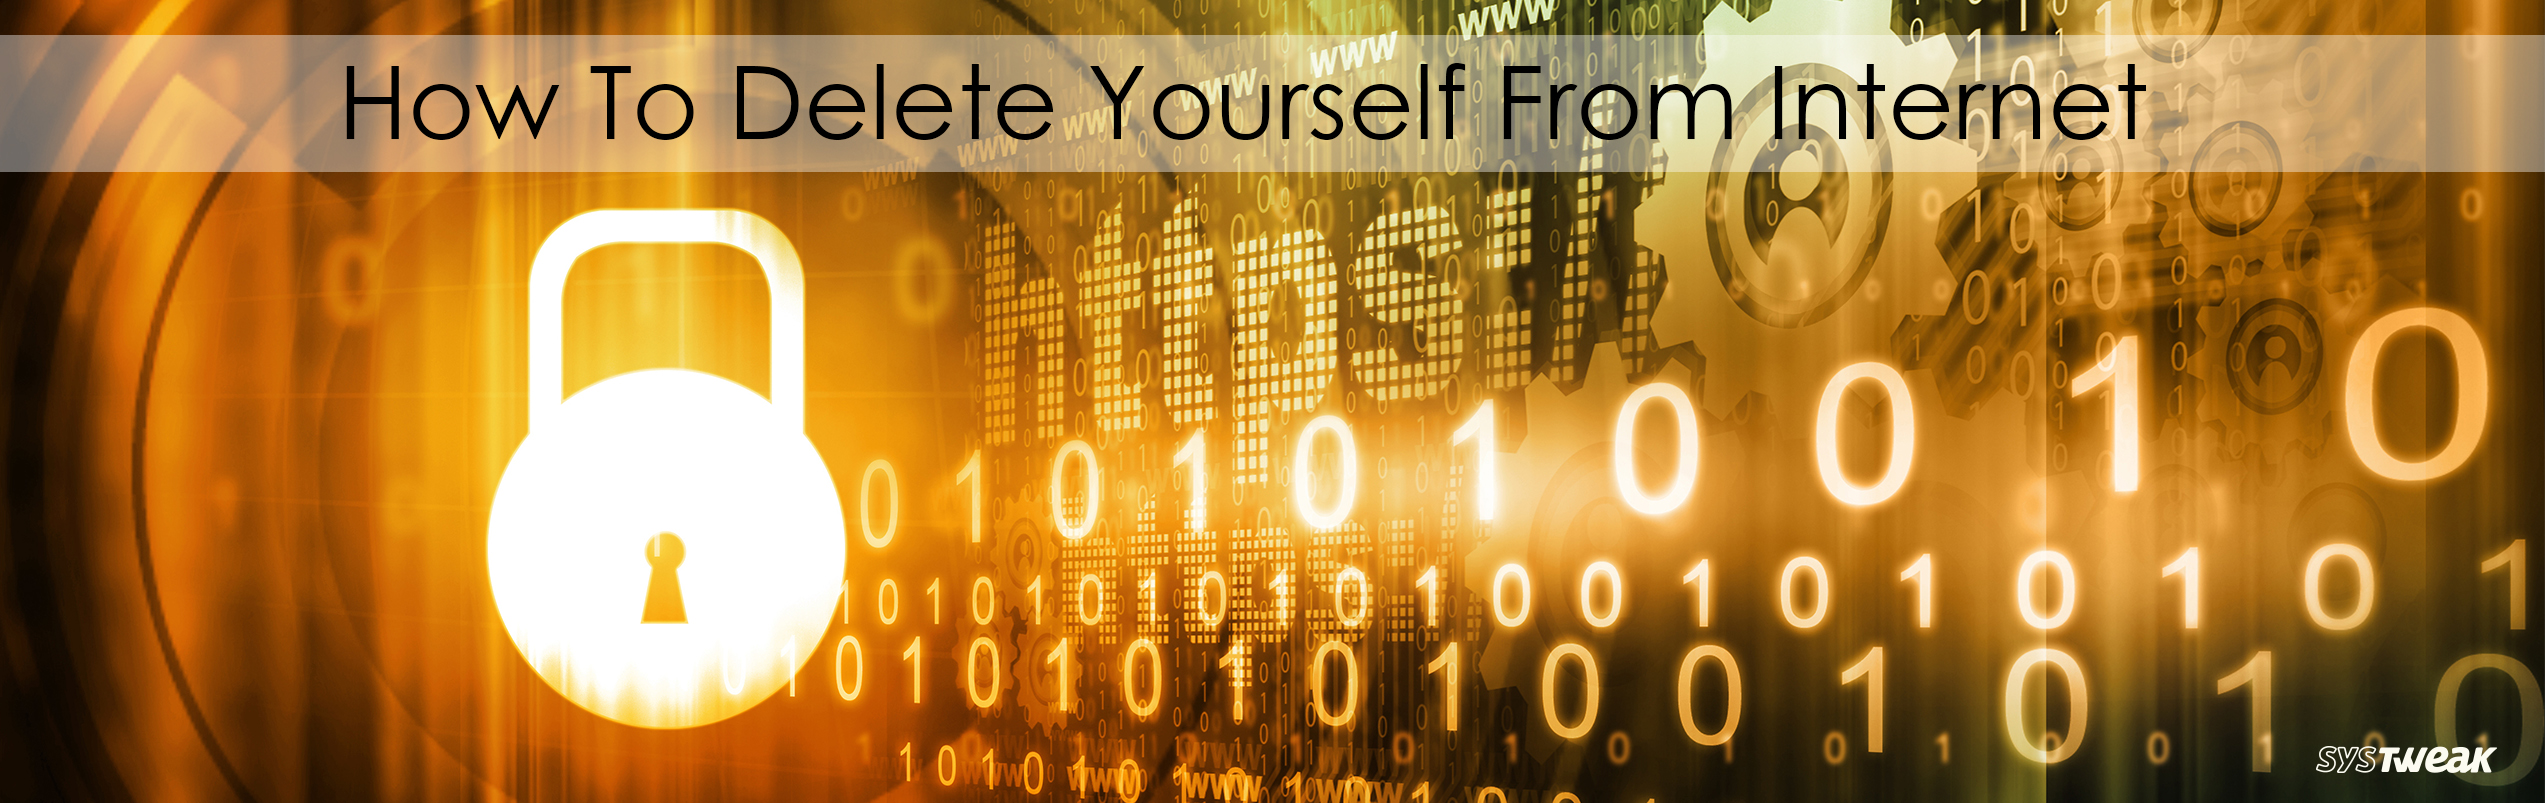 5 Quick Ways to Delete Your Online Identity